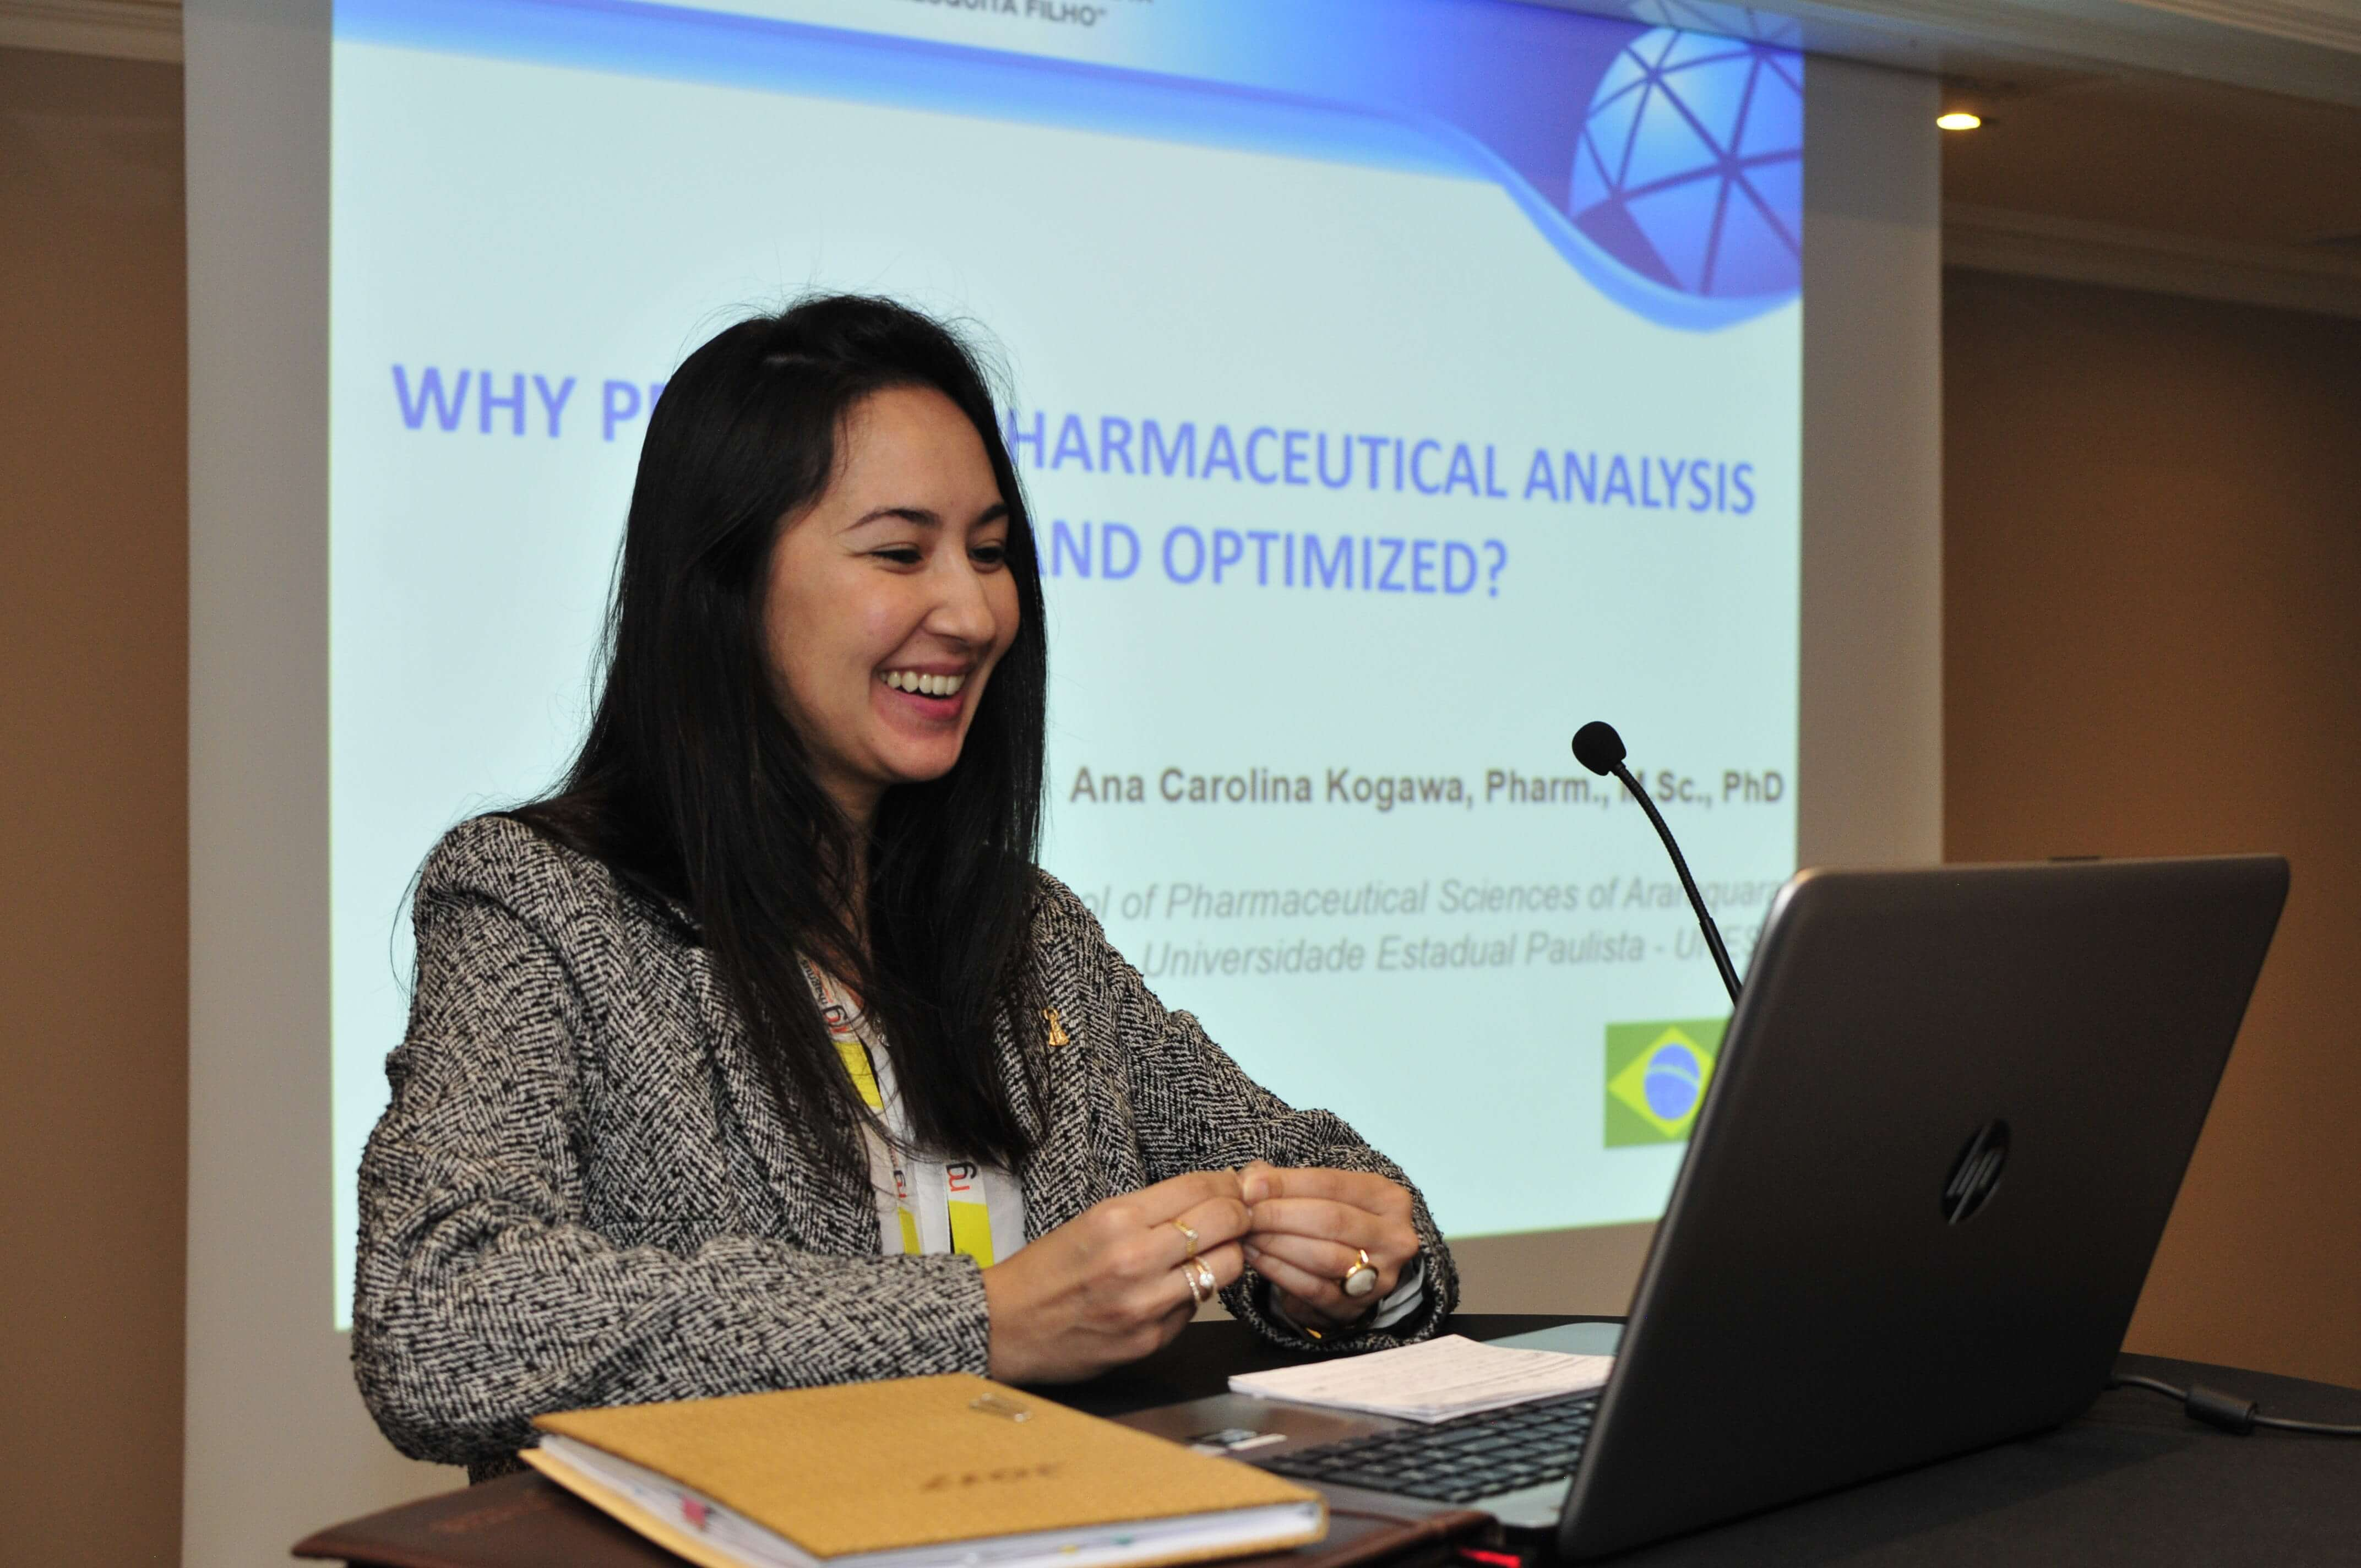 Leading speakers for Biotechnology summits-Ana Carolina Kogawa